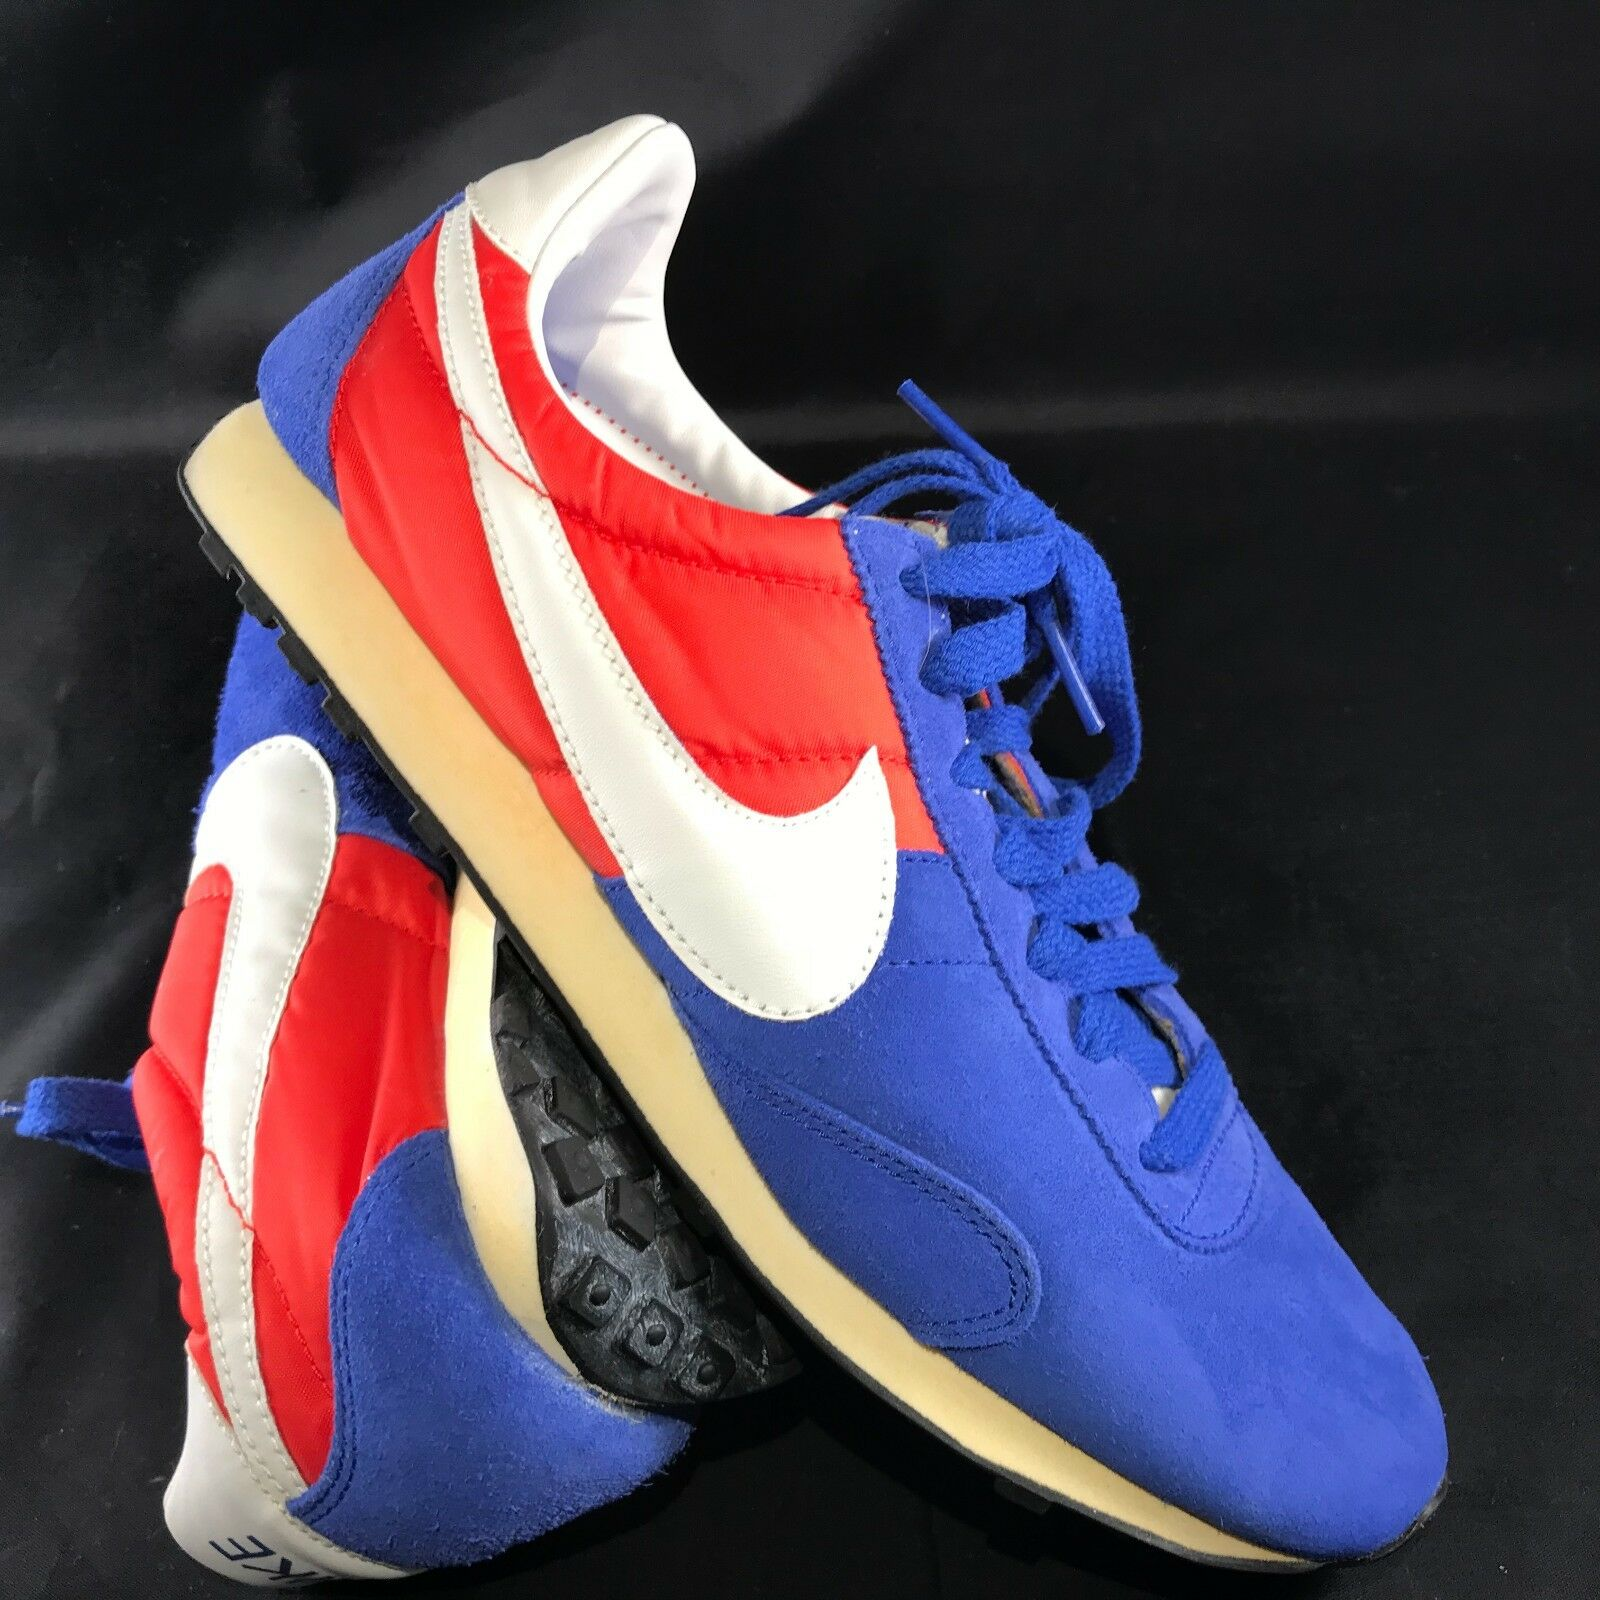 MENS NIKE PRE MONTRAL RACER 476717 400 US SZ 8.5 RUNNING SHOES blueeE RED WHITE